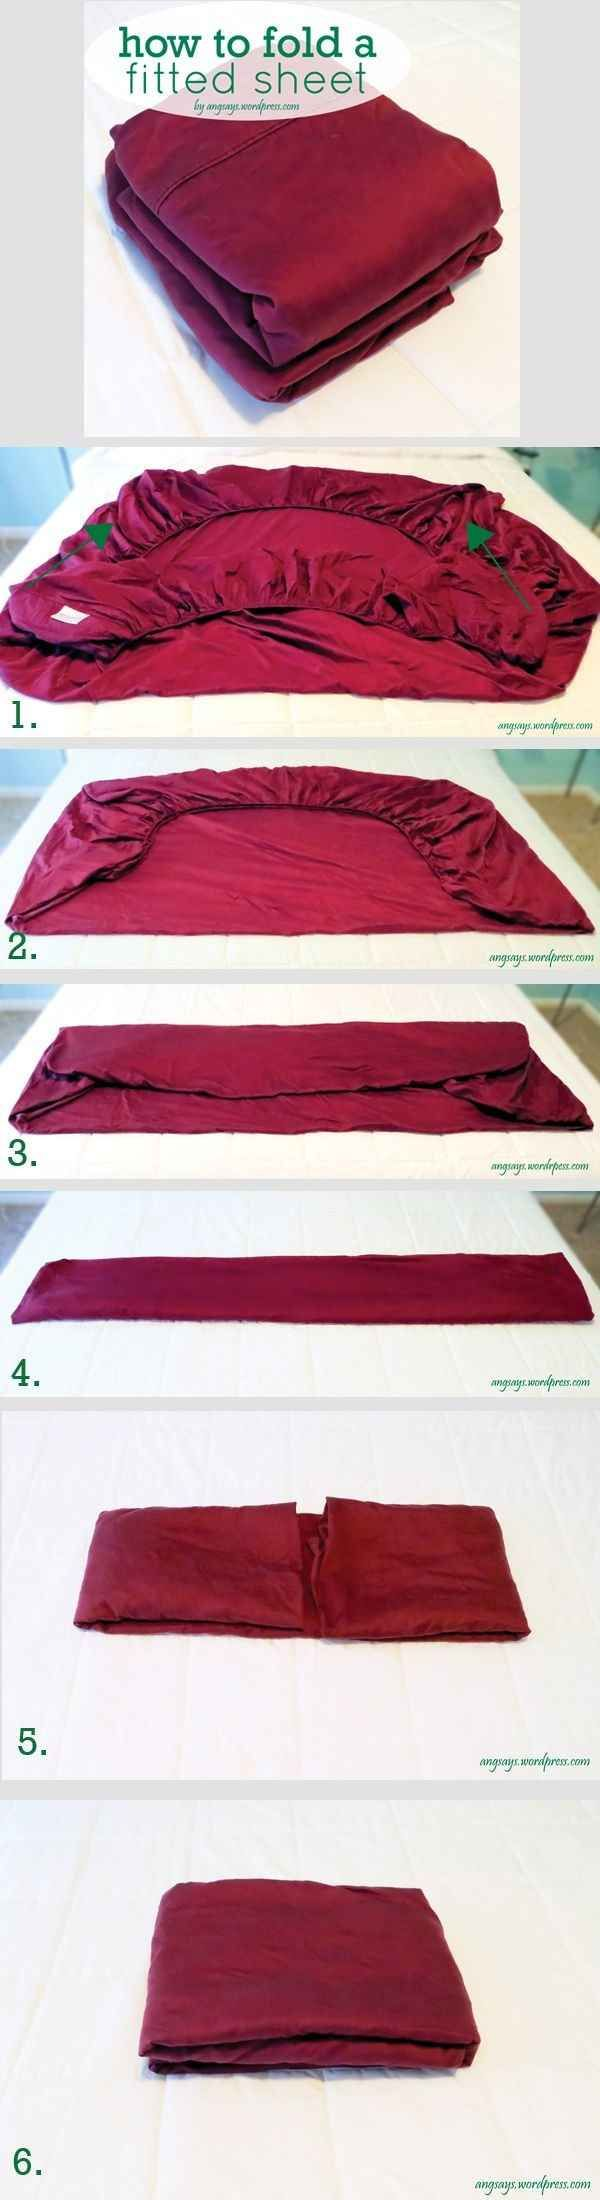 Folding a fitted sheet